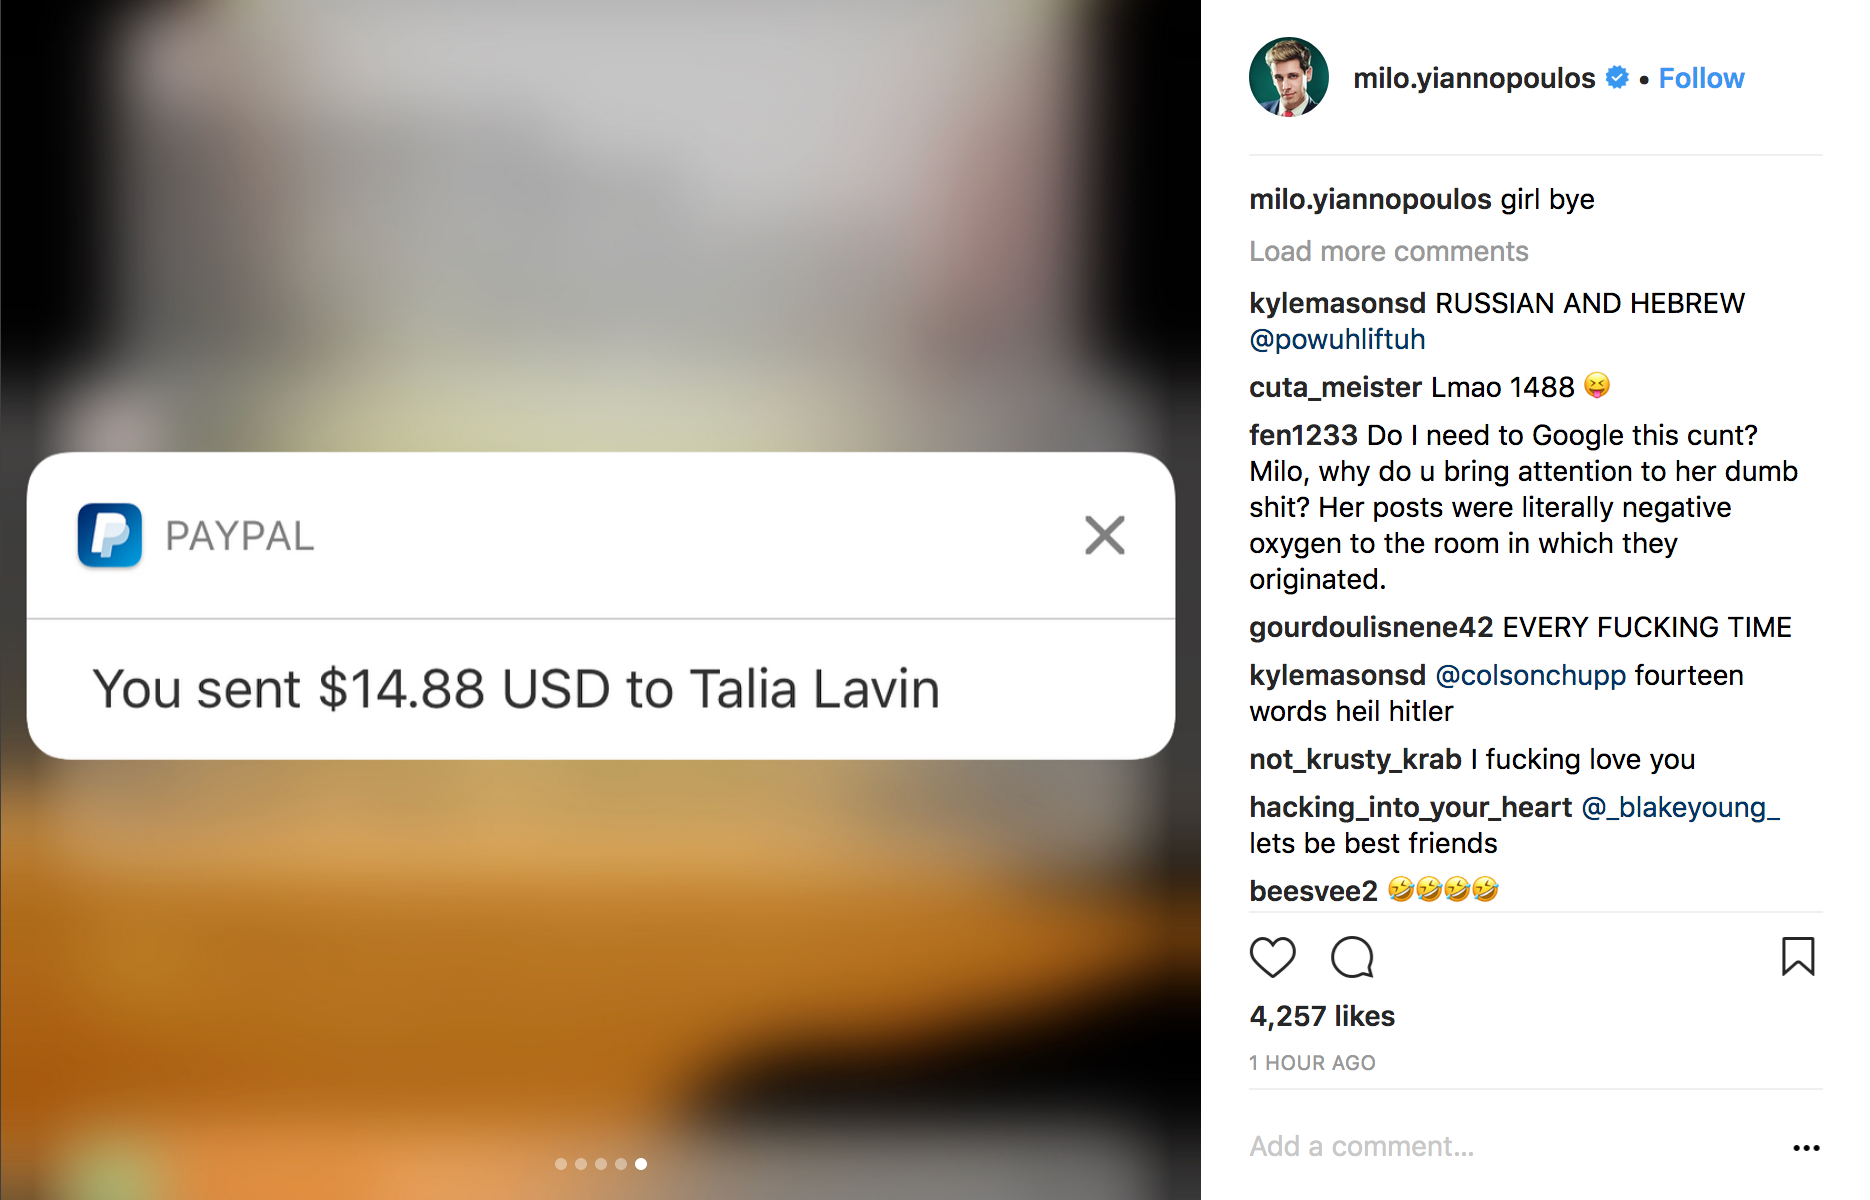 Instagram post by Milo Yiannopoulos showing he sent a Jewish journalist $14.88 via PayPal